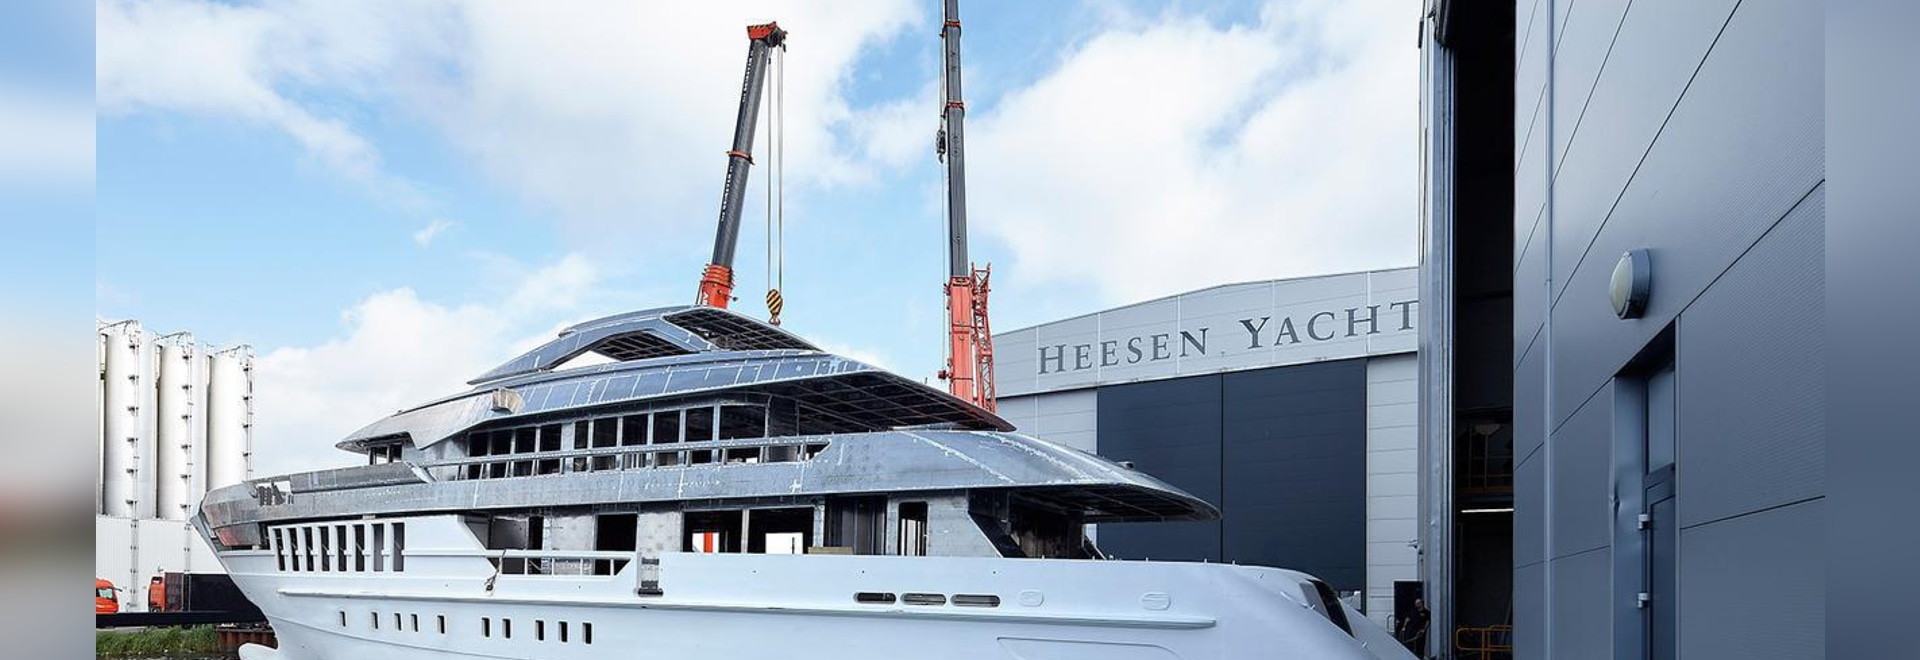 The yacht was launched on January 4. All photos courtesy of Dick Holthuis.